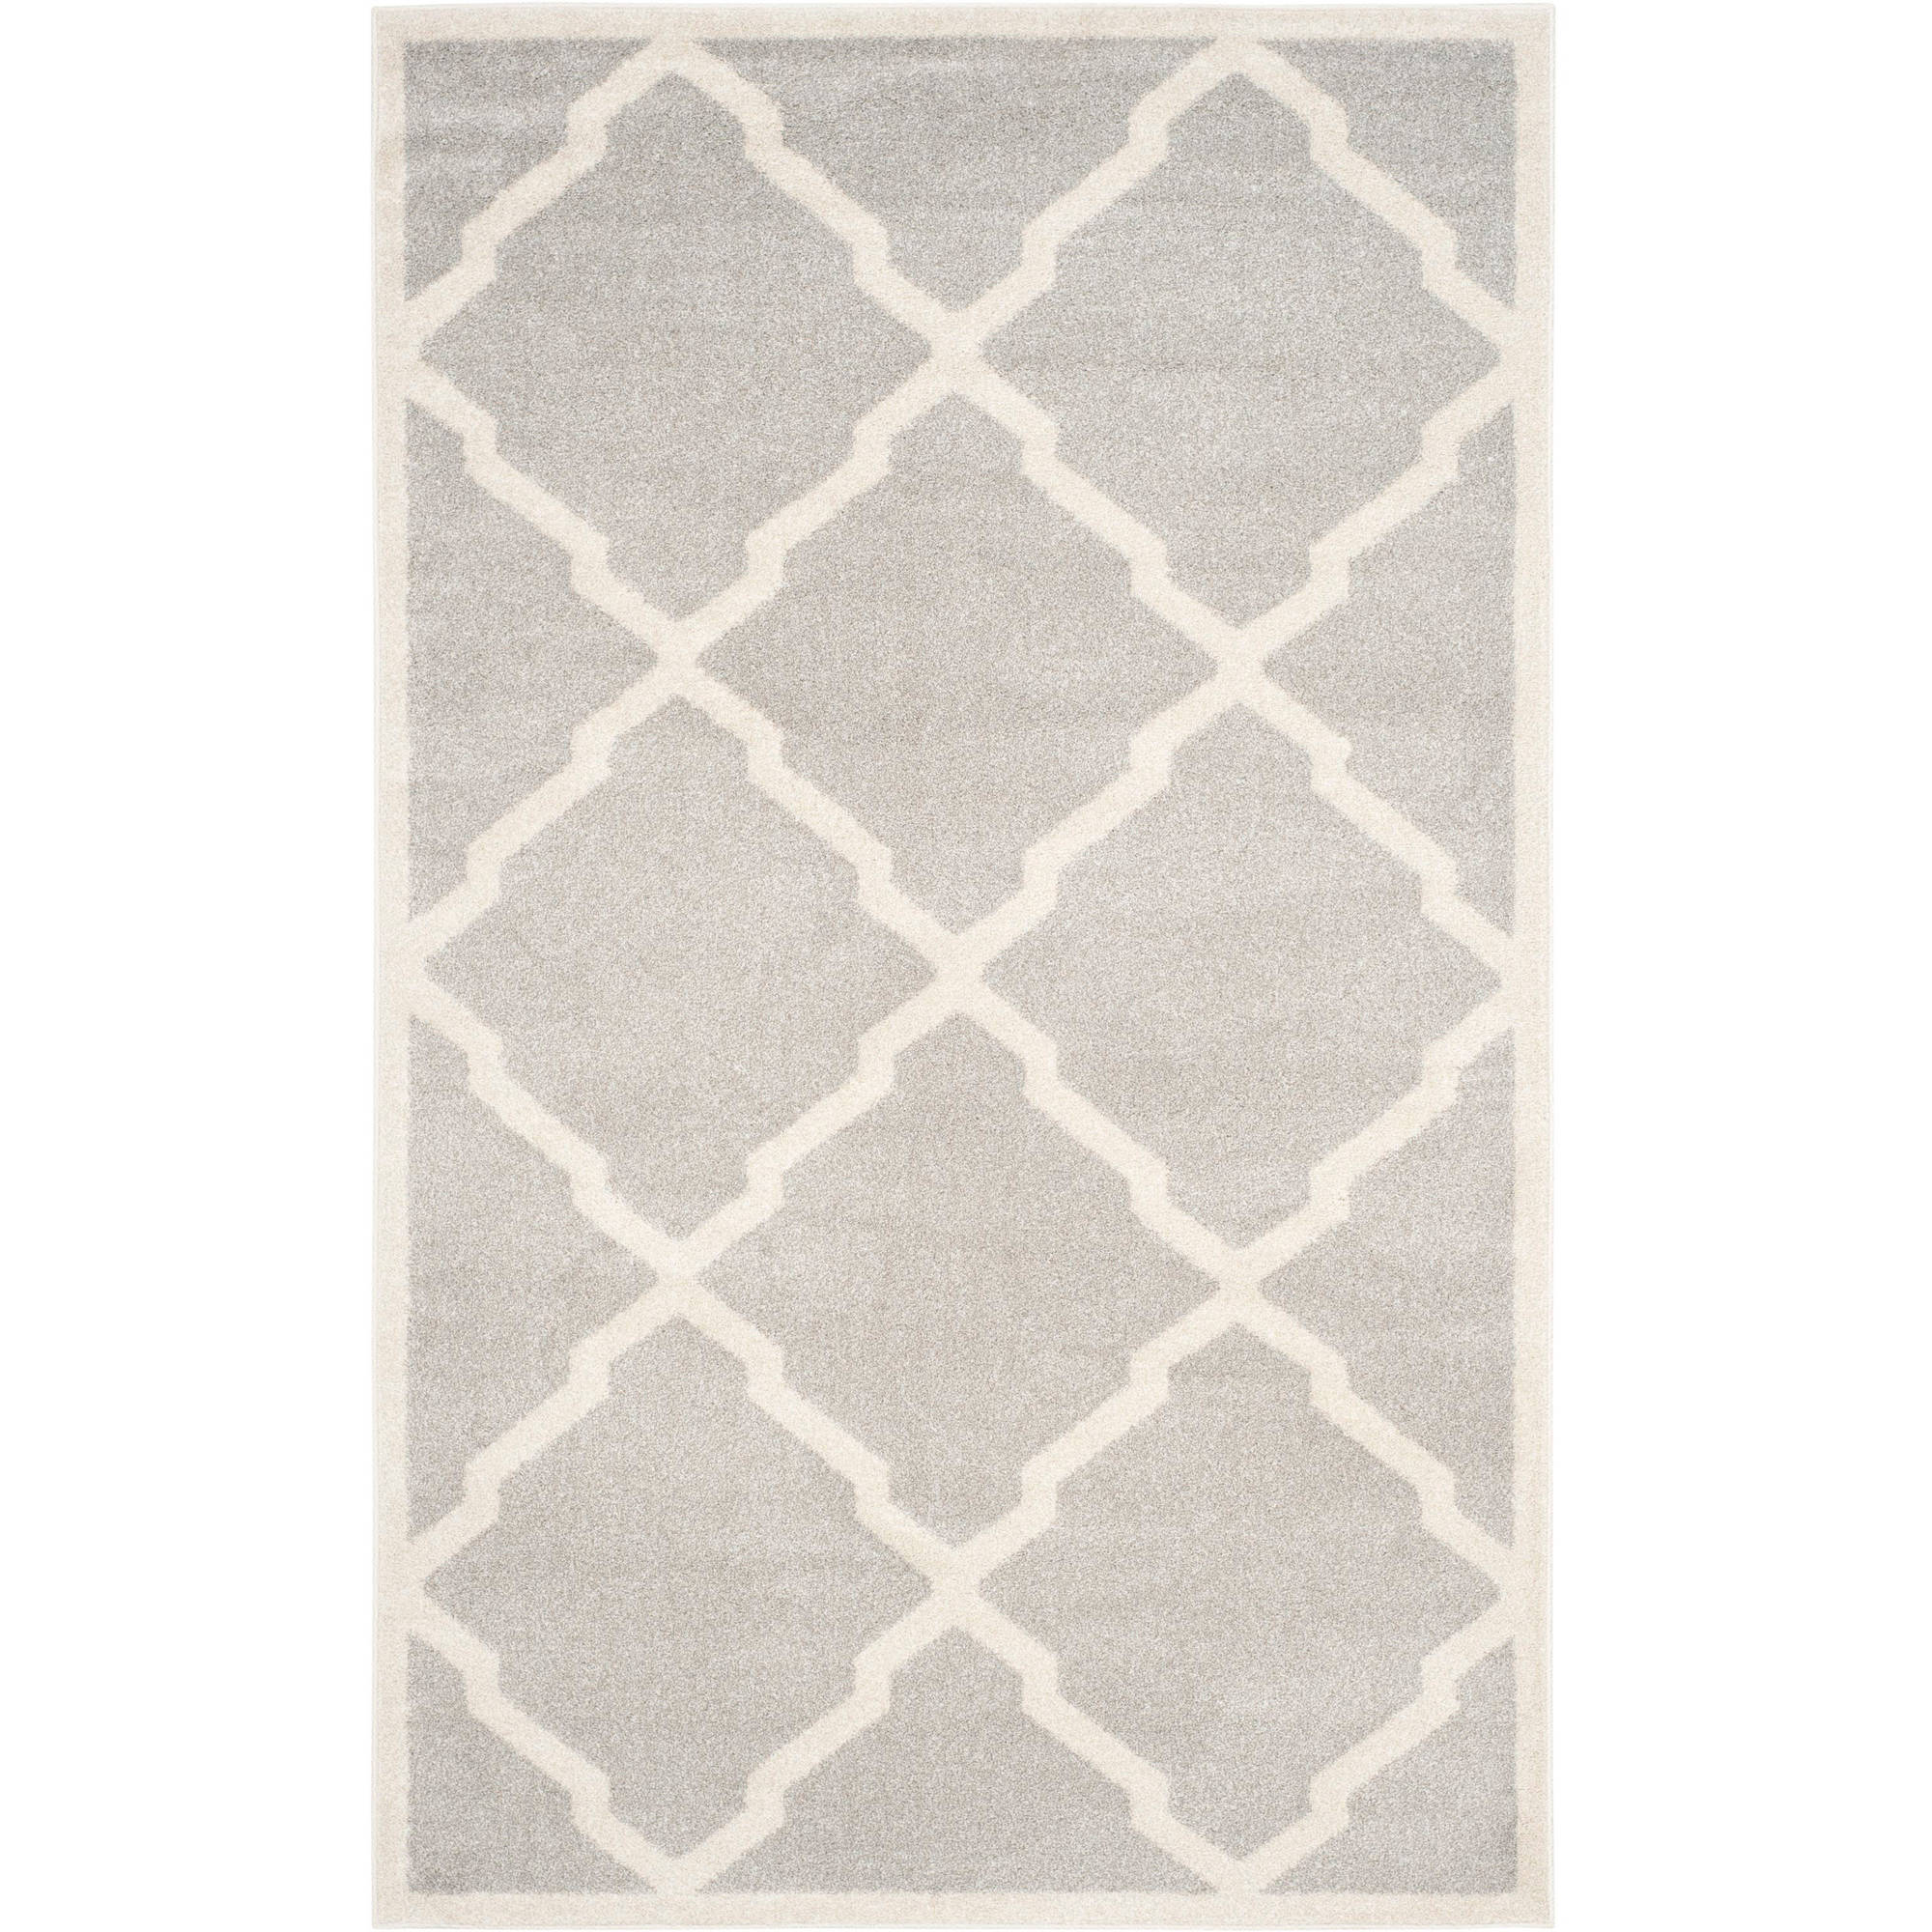 Safavieh Amherst Sharalyn Power-Loomed Indoor/Outdoor Area Rug or Runner